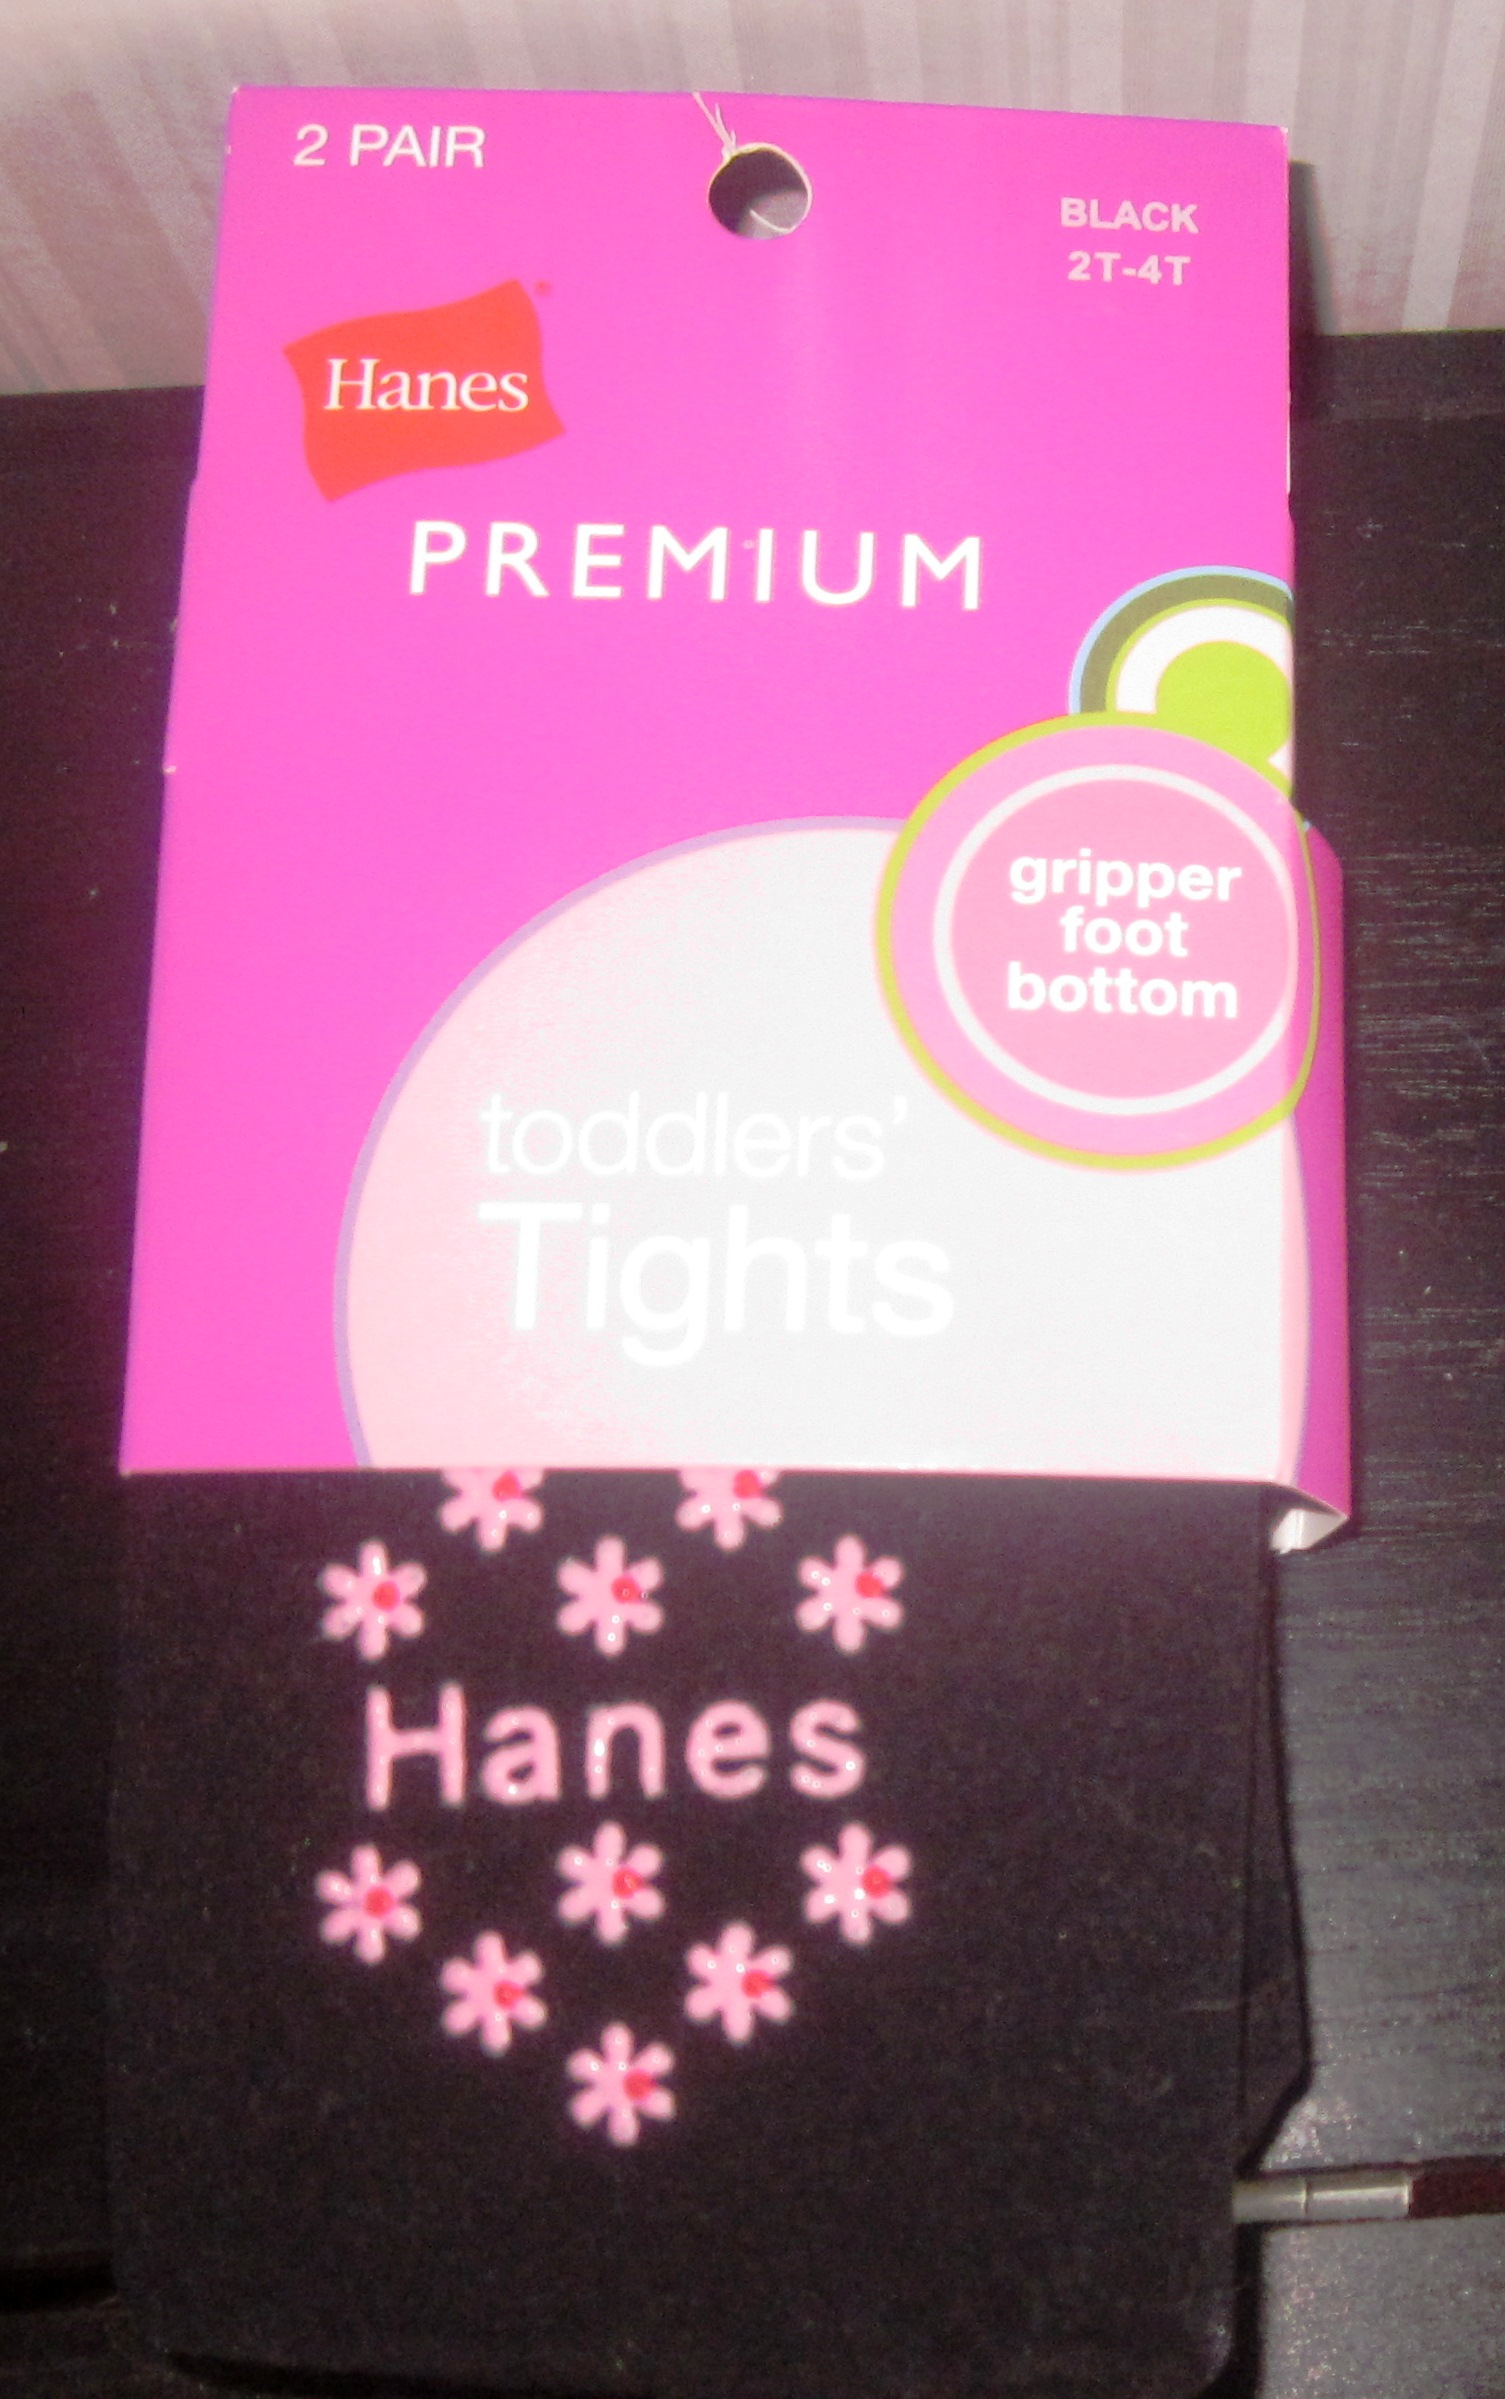 Hanes Infant Tights Black 9-18 Grip Foot